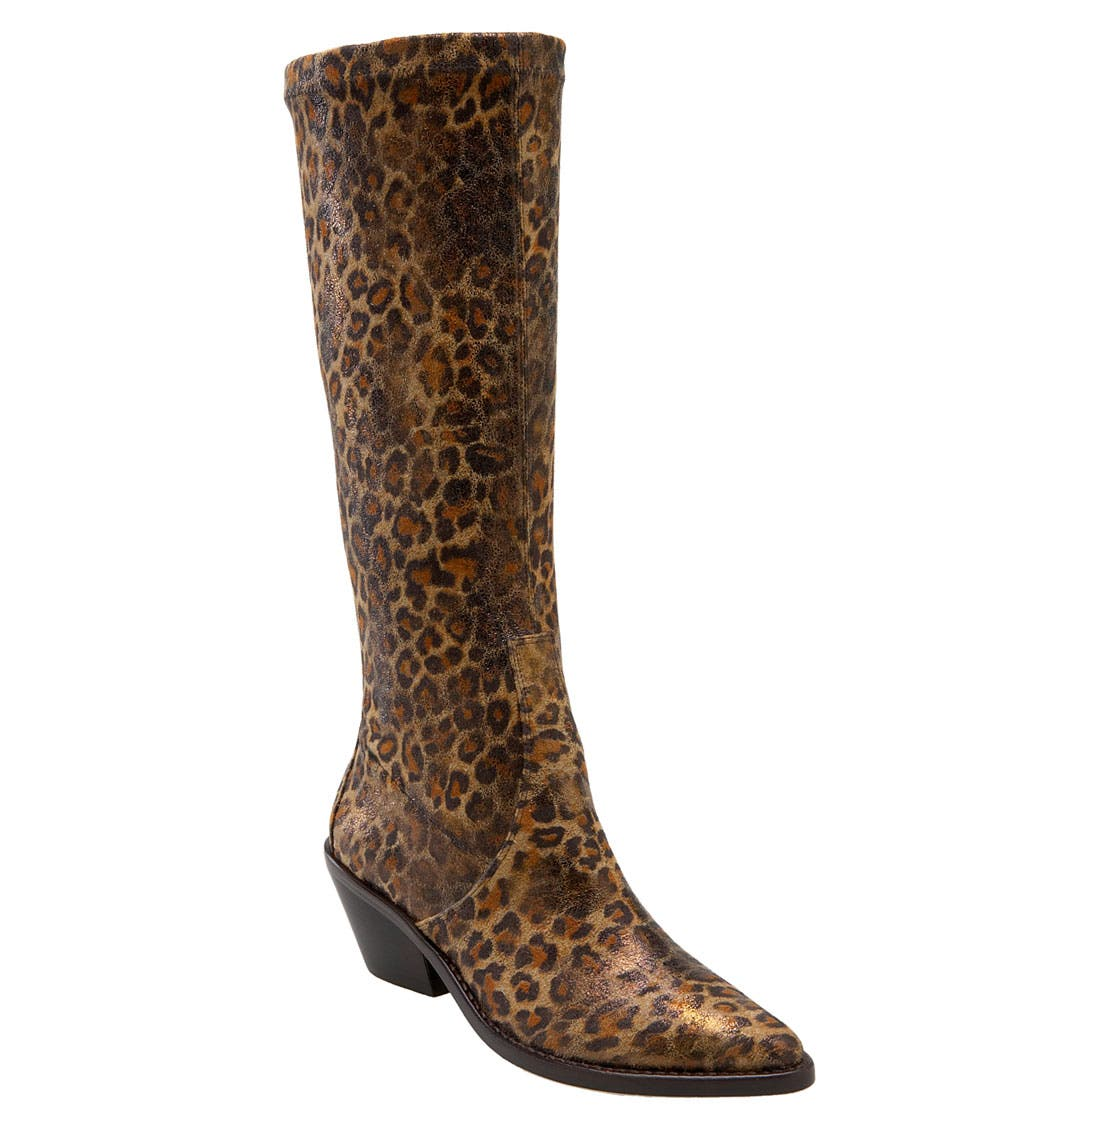 Main Image - Donald J Pliner 'Jokla' Western Stretch Boot